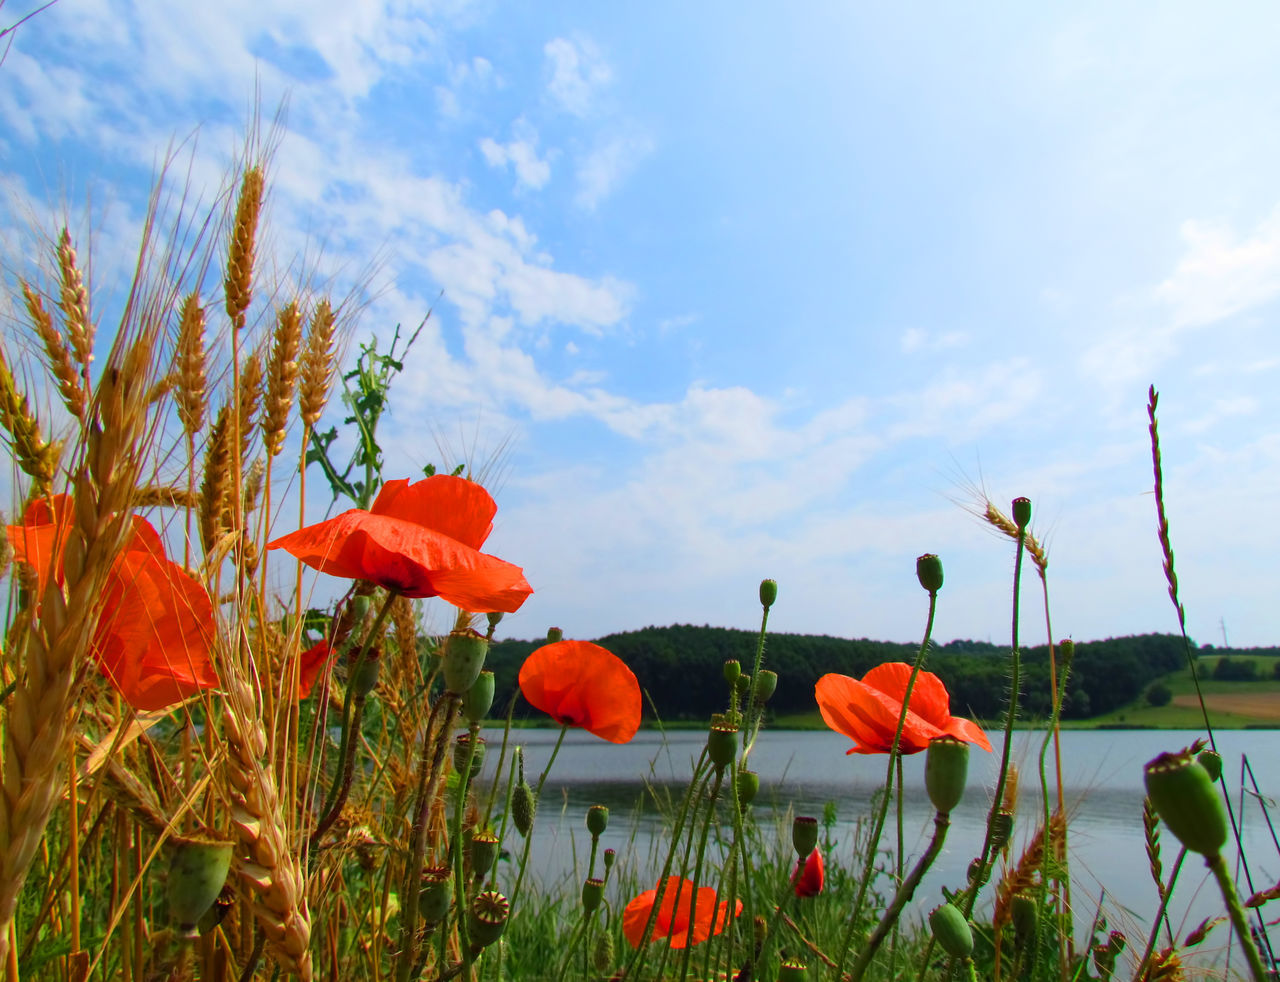 Wallpaper Day Nature Beautiful Nature Outdoors Springtime In Bloom Blooming Blossom Flowers :) Poppies  Sky River